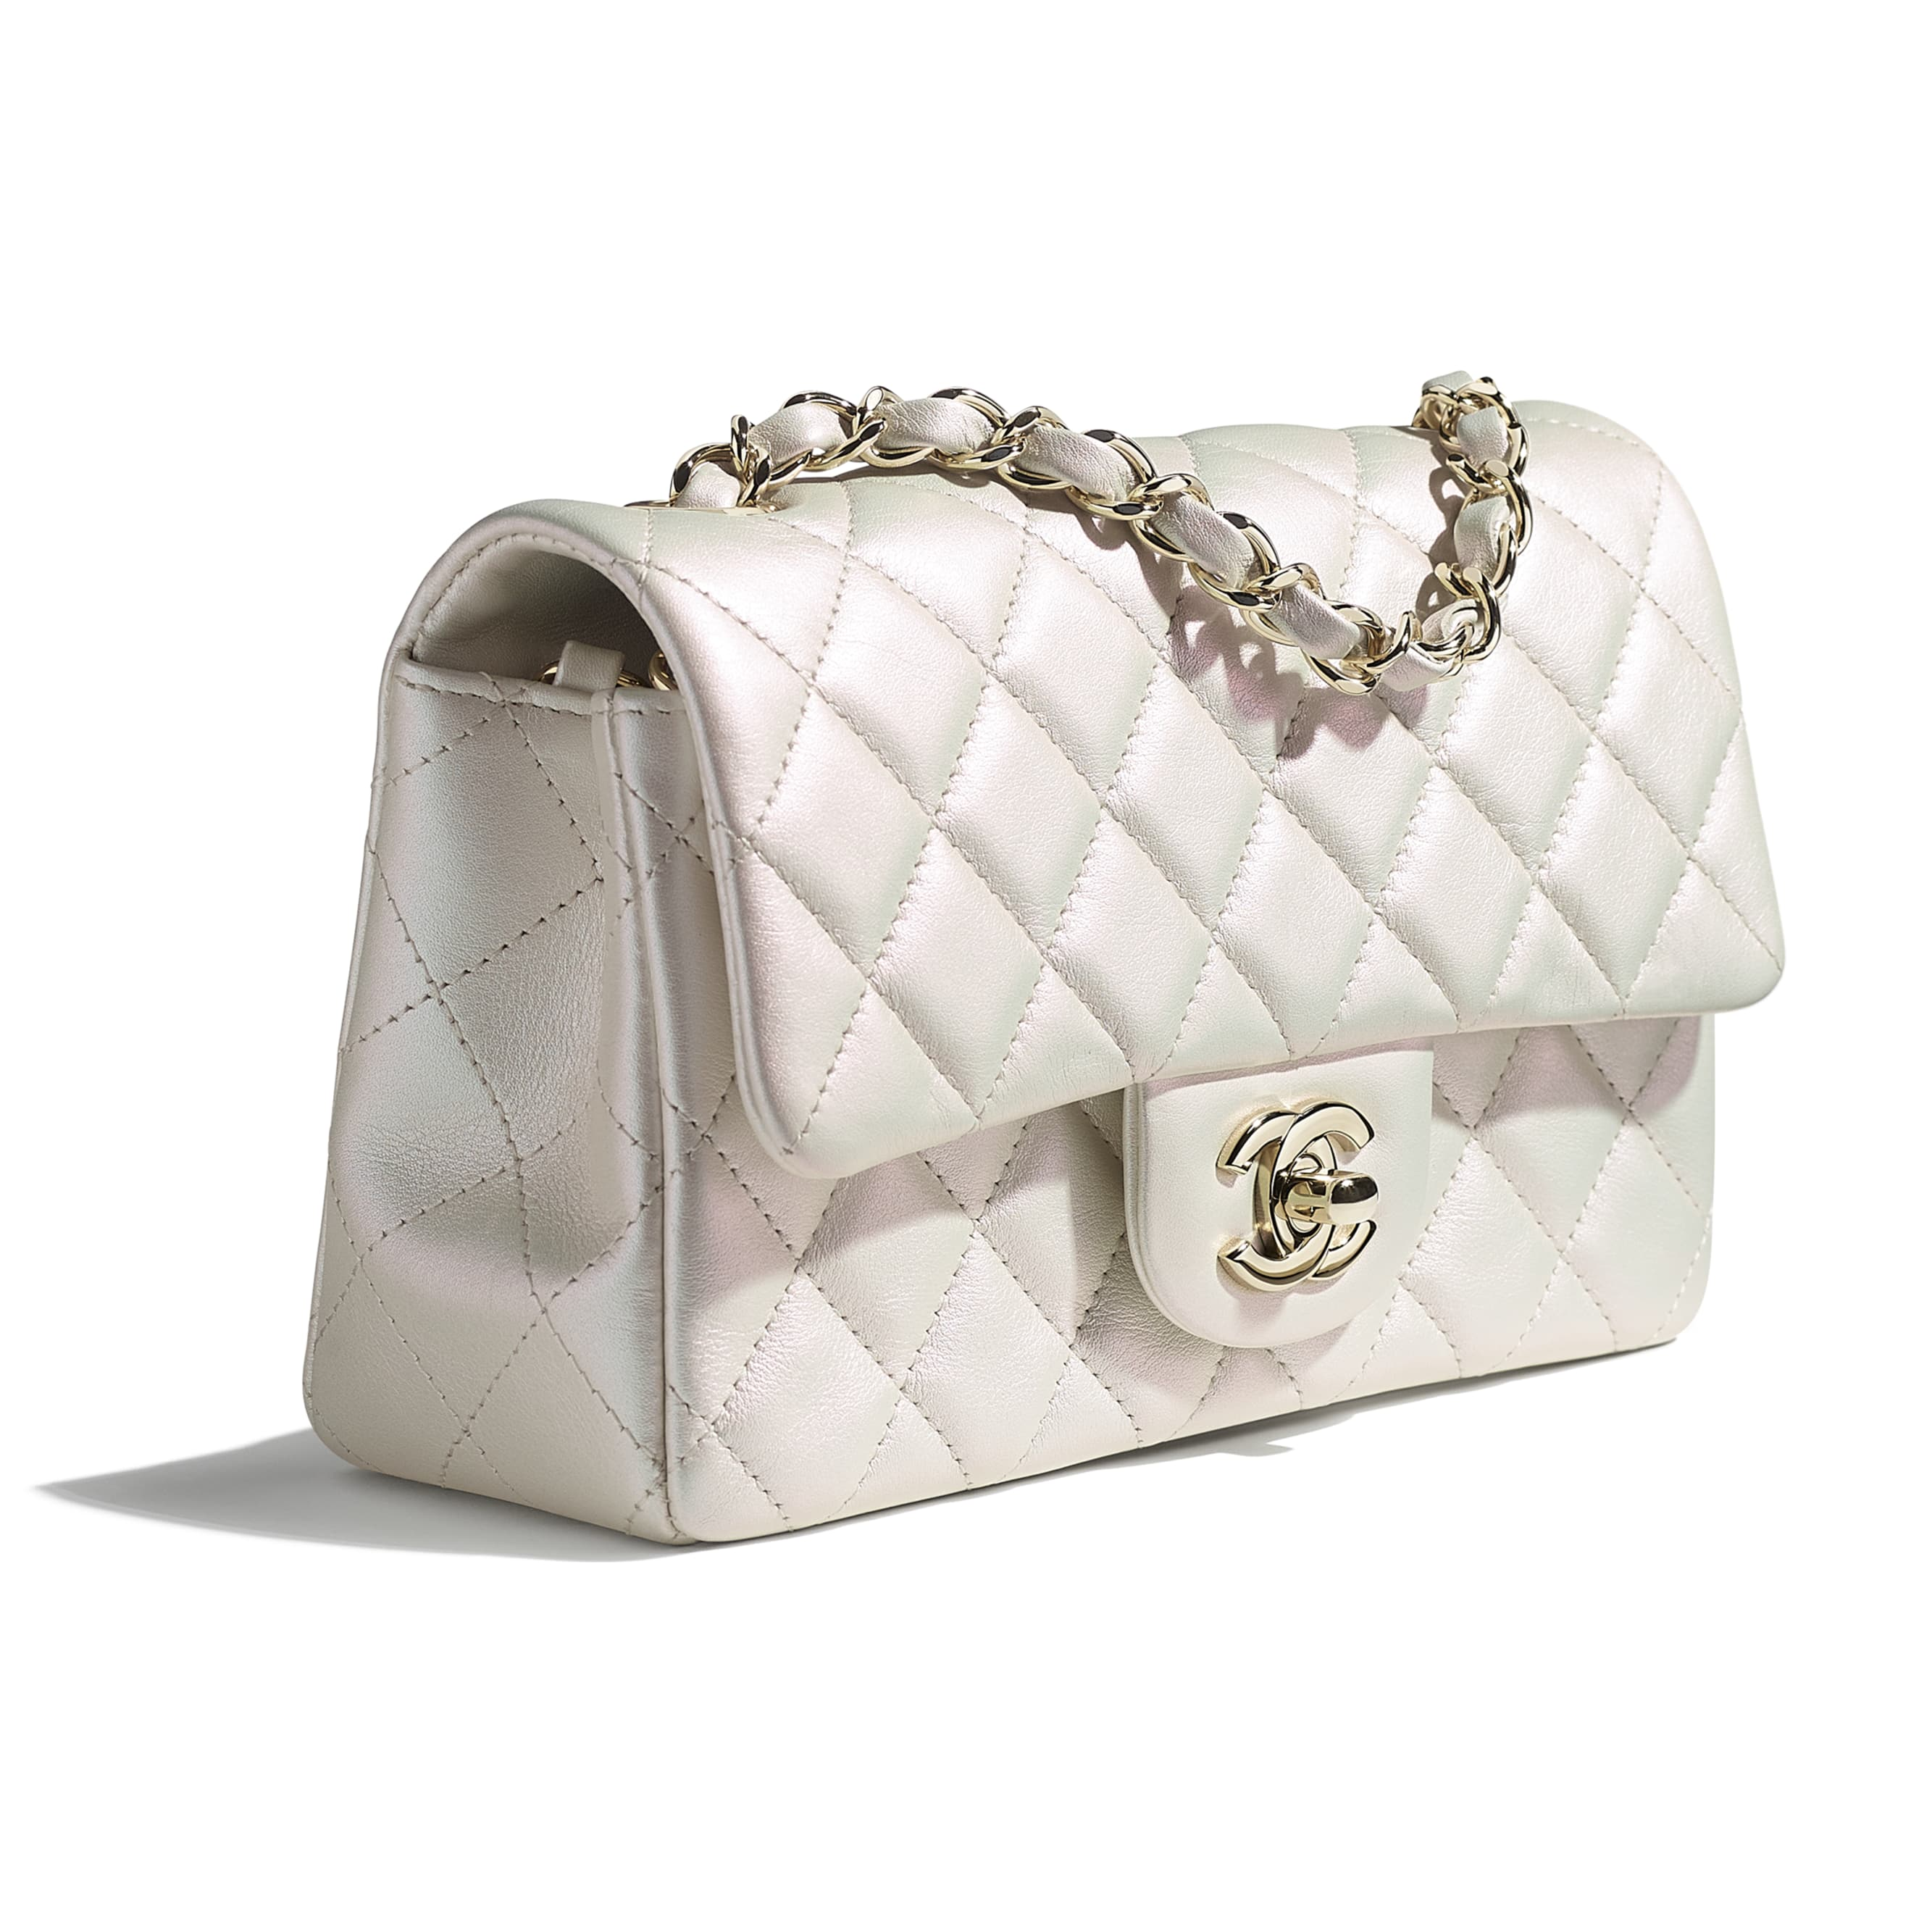 Mini Flap Bag - White - Iridescent Calfskin & Gold-Tone Metal - CHANEL - Extra view - see standard sized version